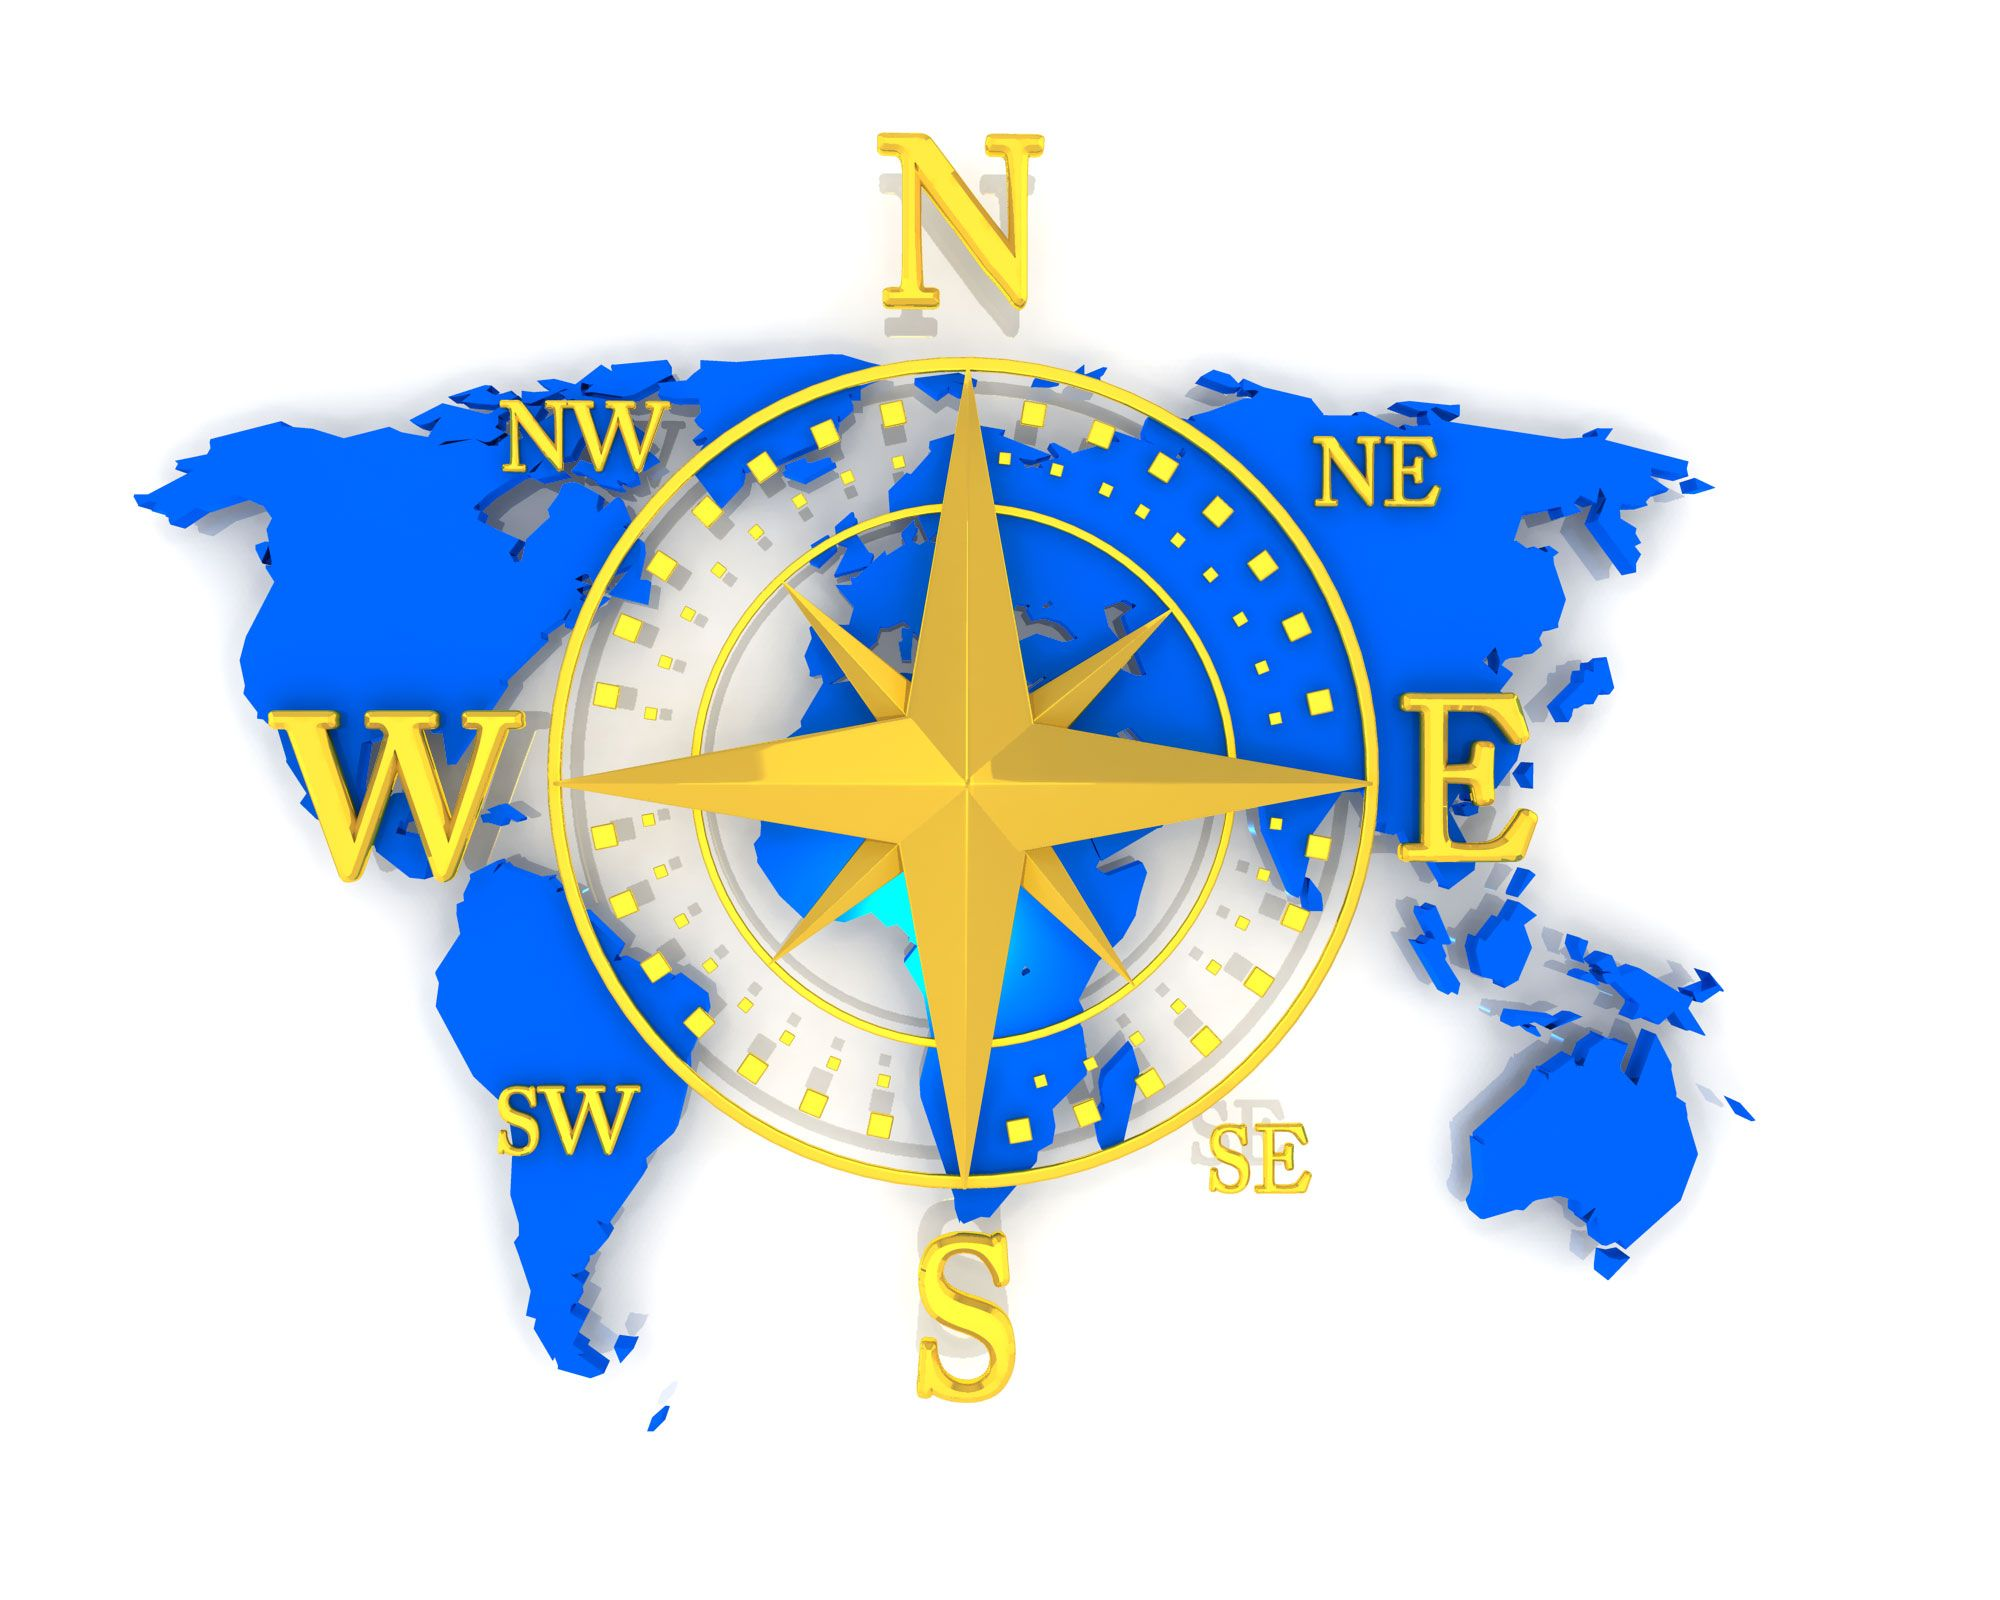 Us Map With Directions Compass With Directions On World Map Stock Photo | PowerPoint